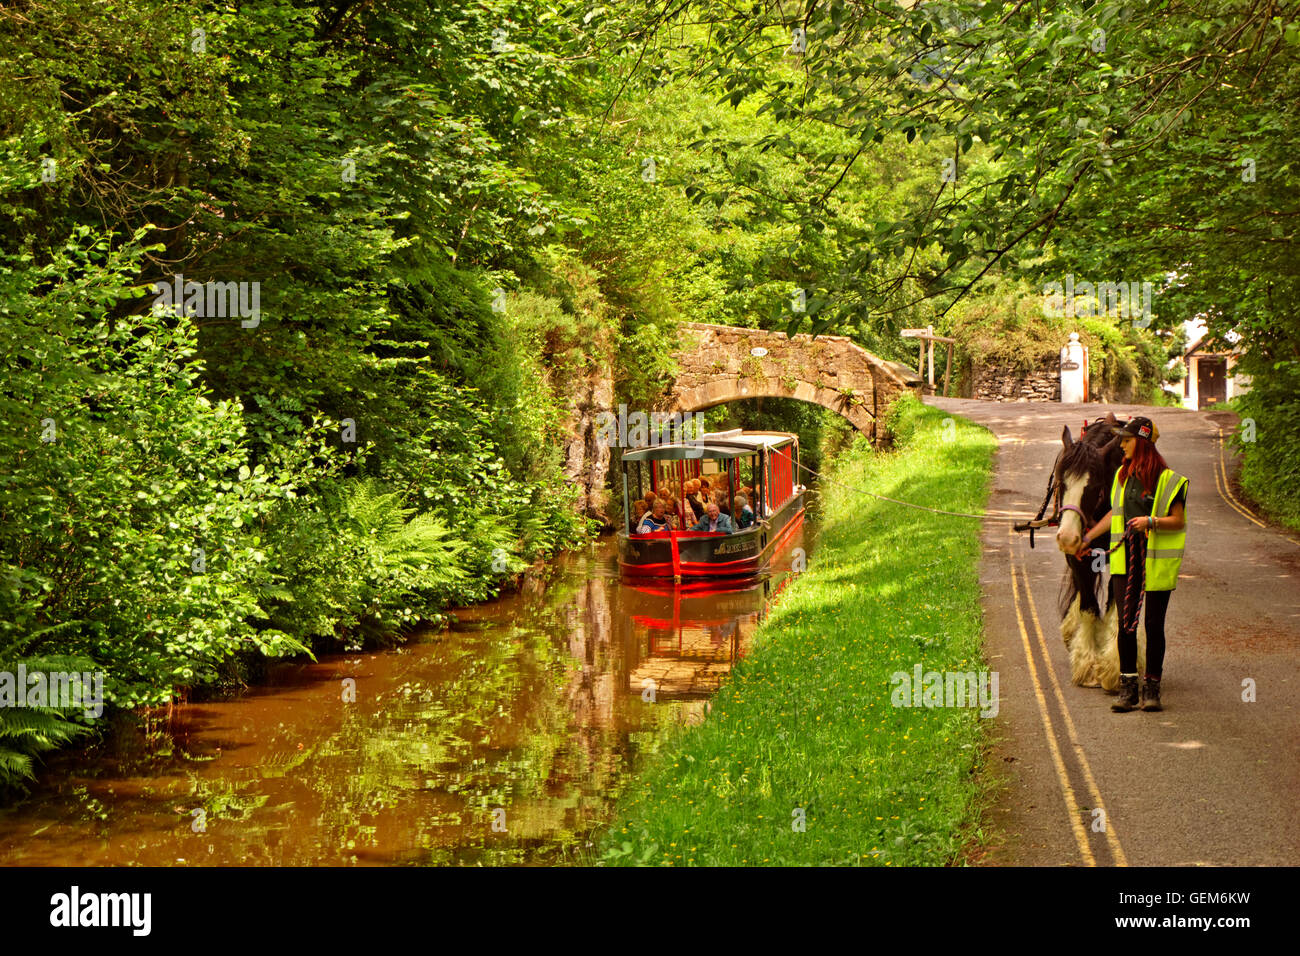 Horse drawn tourism barge on the upper Llangollen Canal near the Horseshoe Falls at Llangollen, Denbighshire, Wales - Stock Image